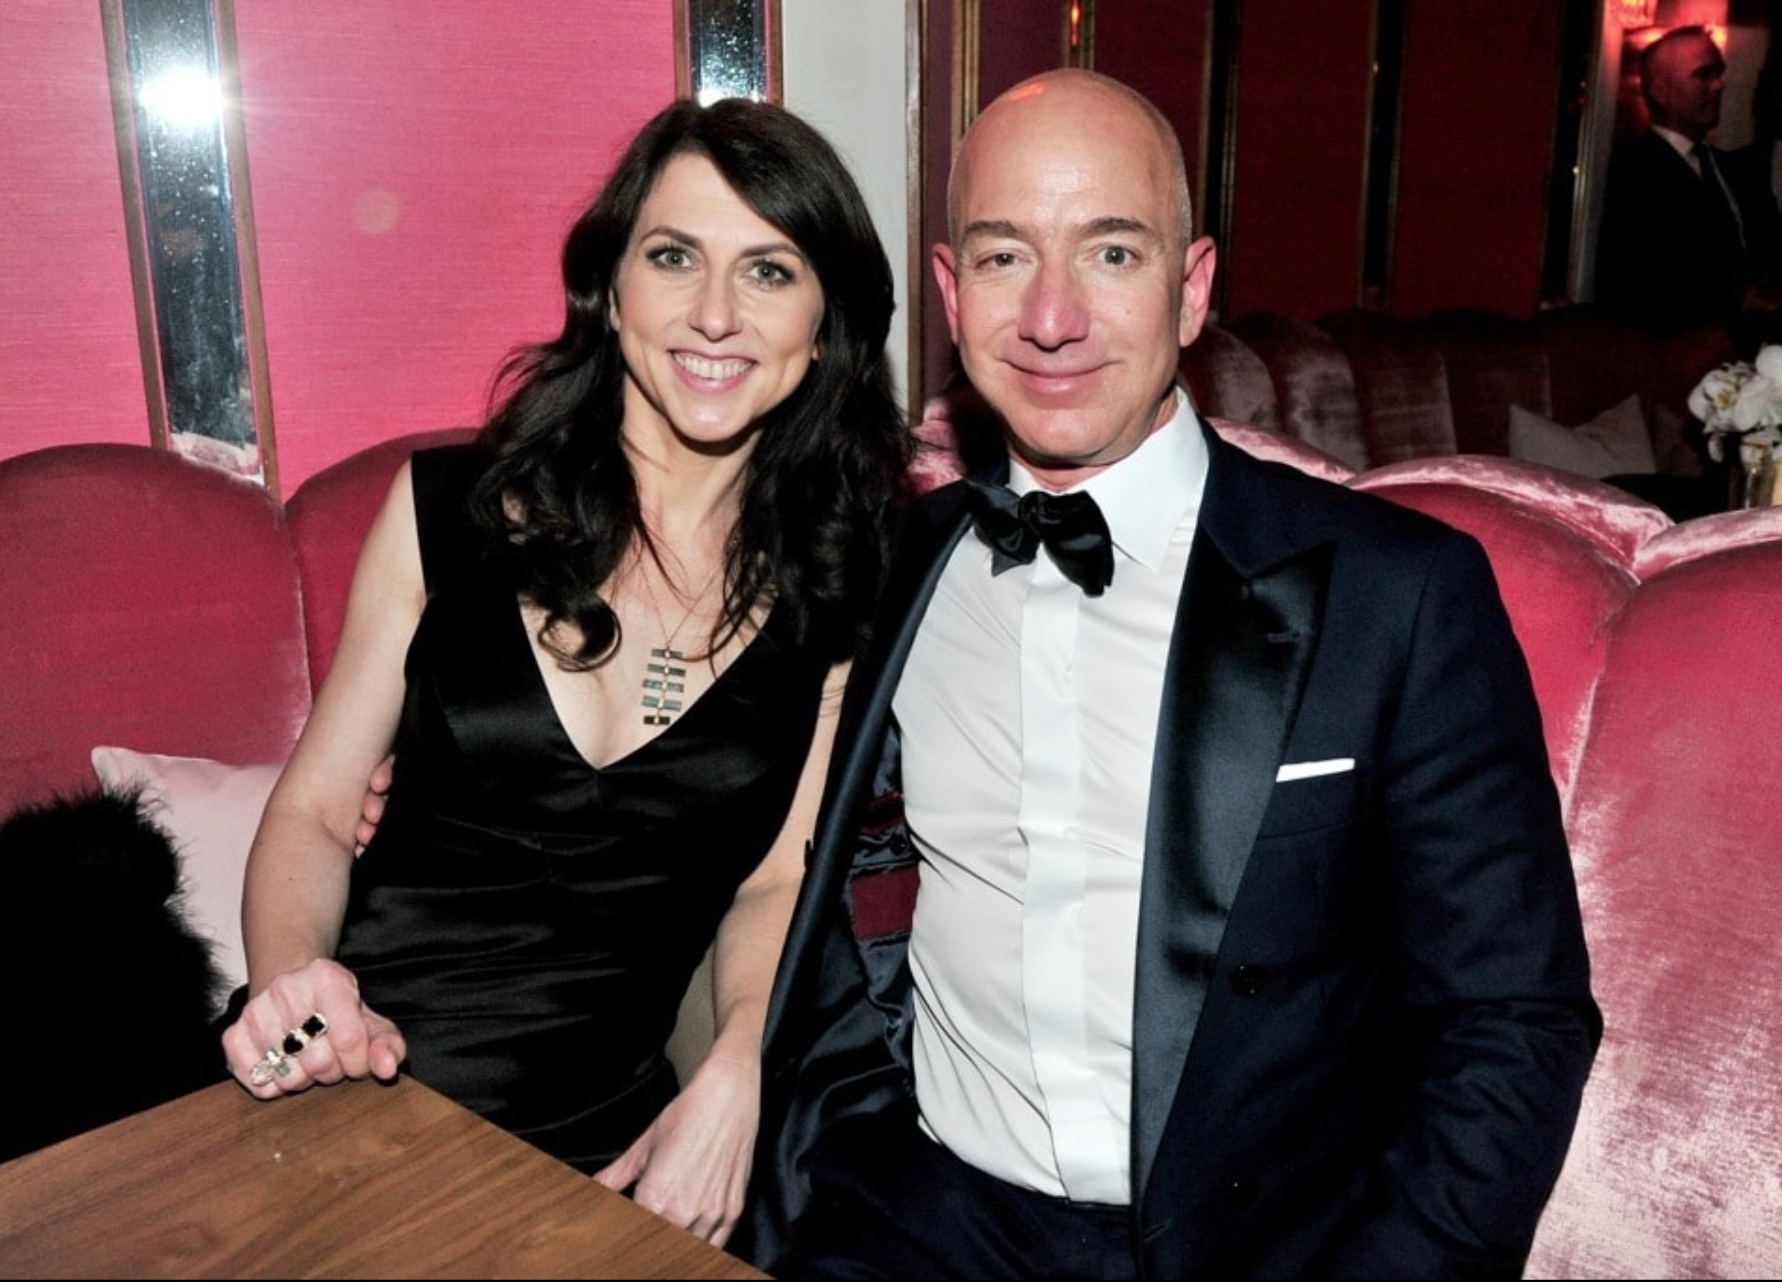 """Bitch You Wasn't With Me Using Dial Up Internet In The Garage."" Breaking: Jeff Bezos Might Lose $70 Billion Dollars In His Divorce."